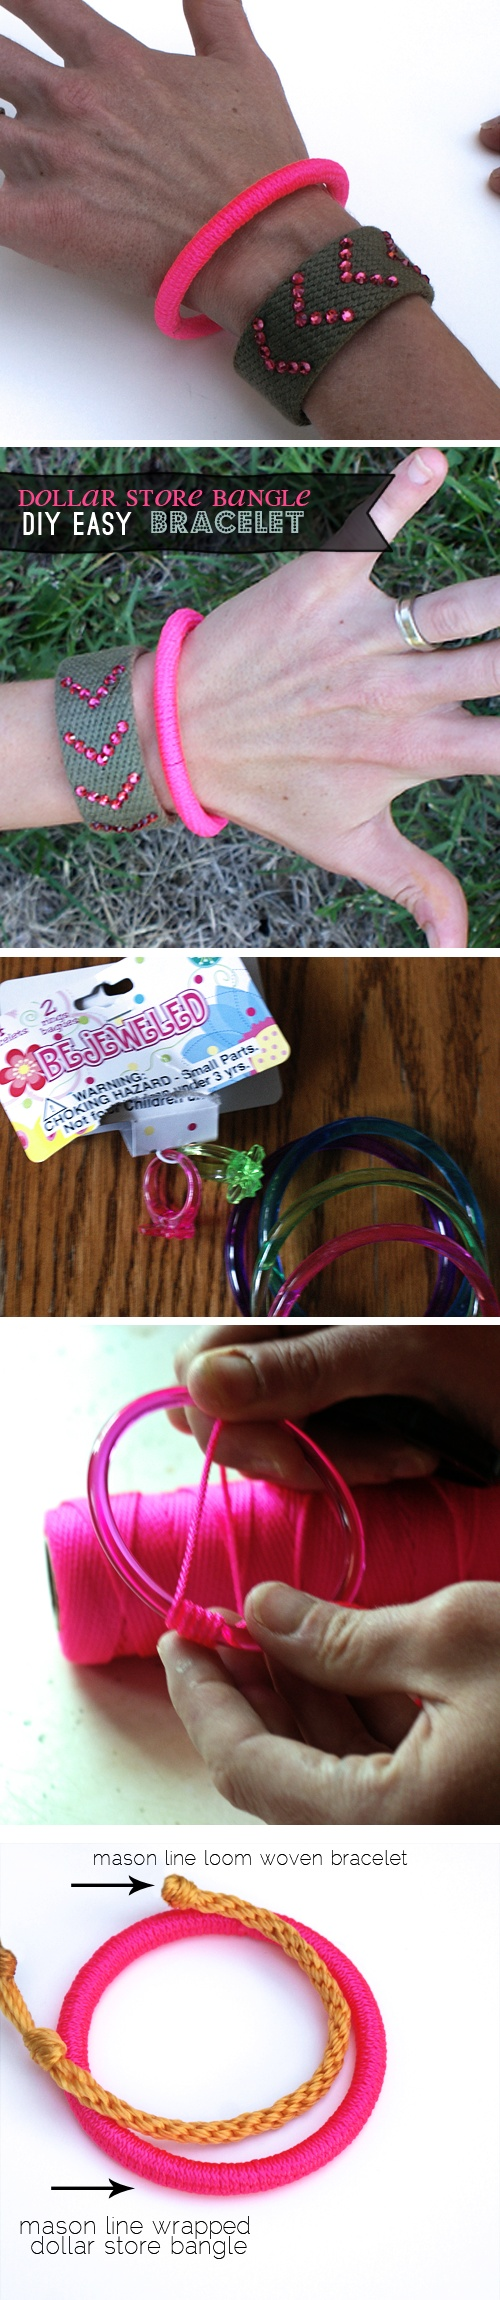 Dollar store bangle bracelet #neon #DIY #jewelry #…